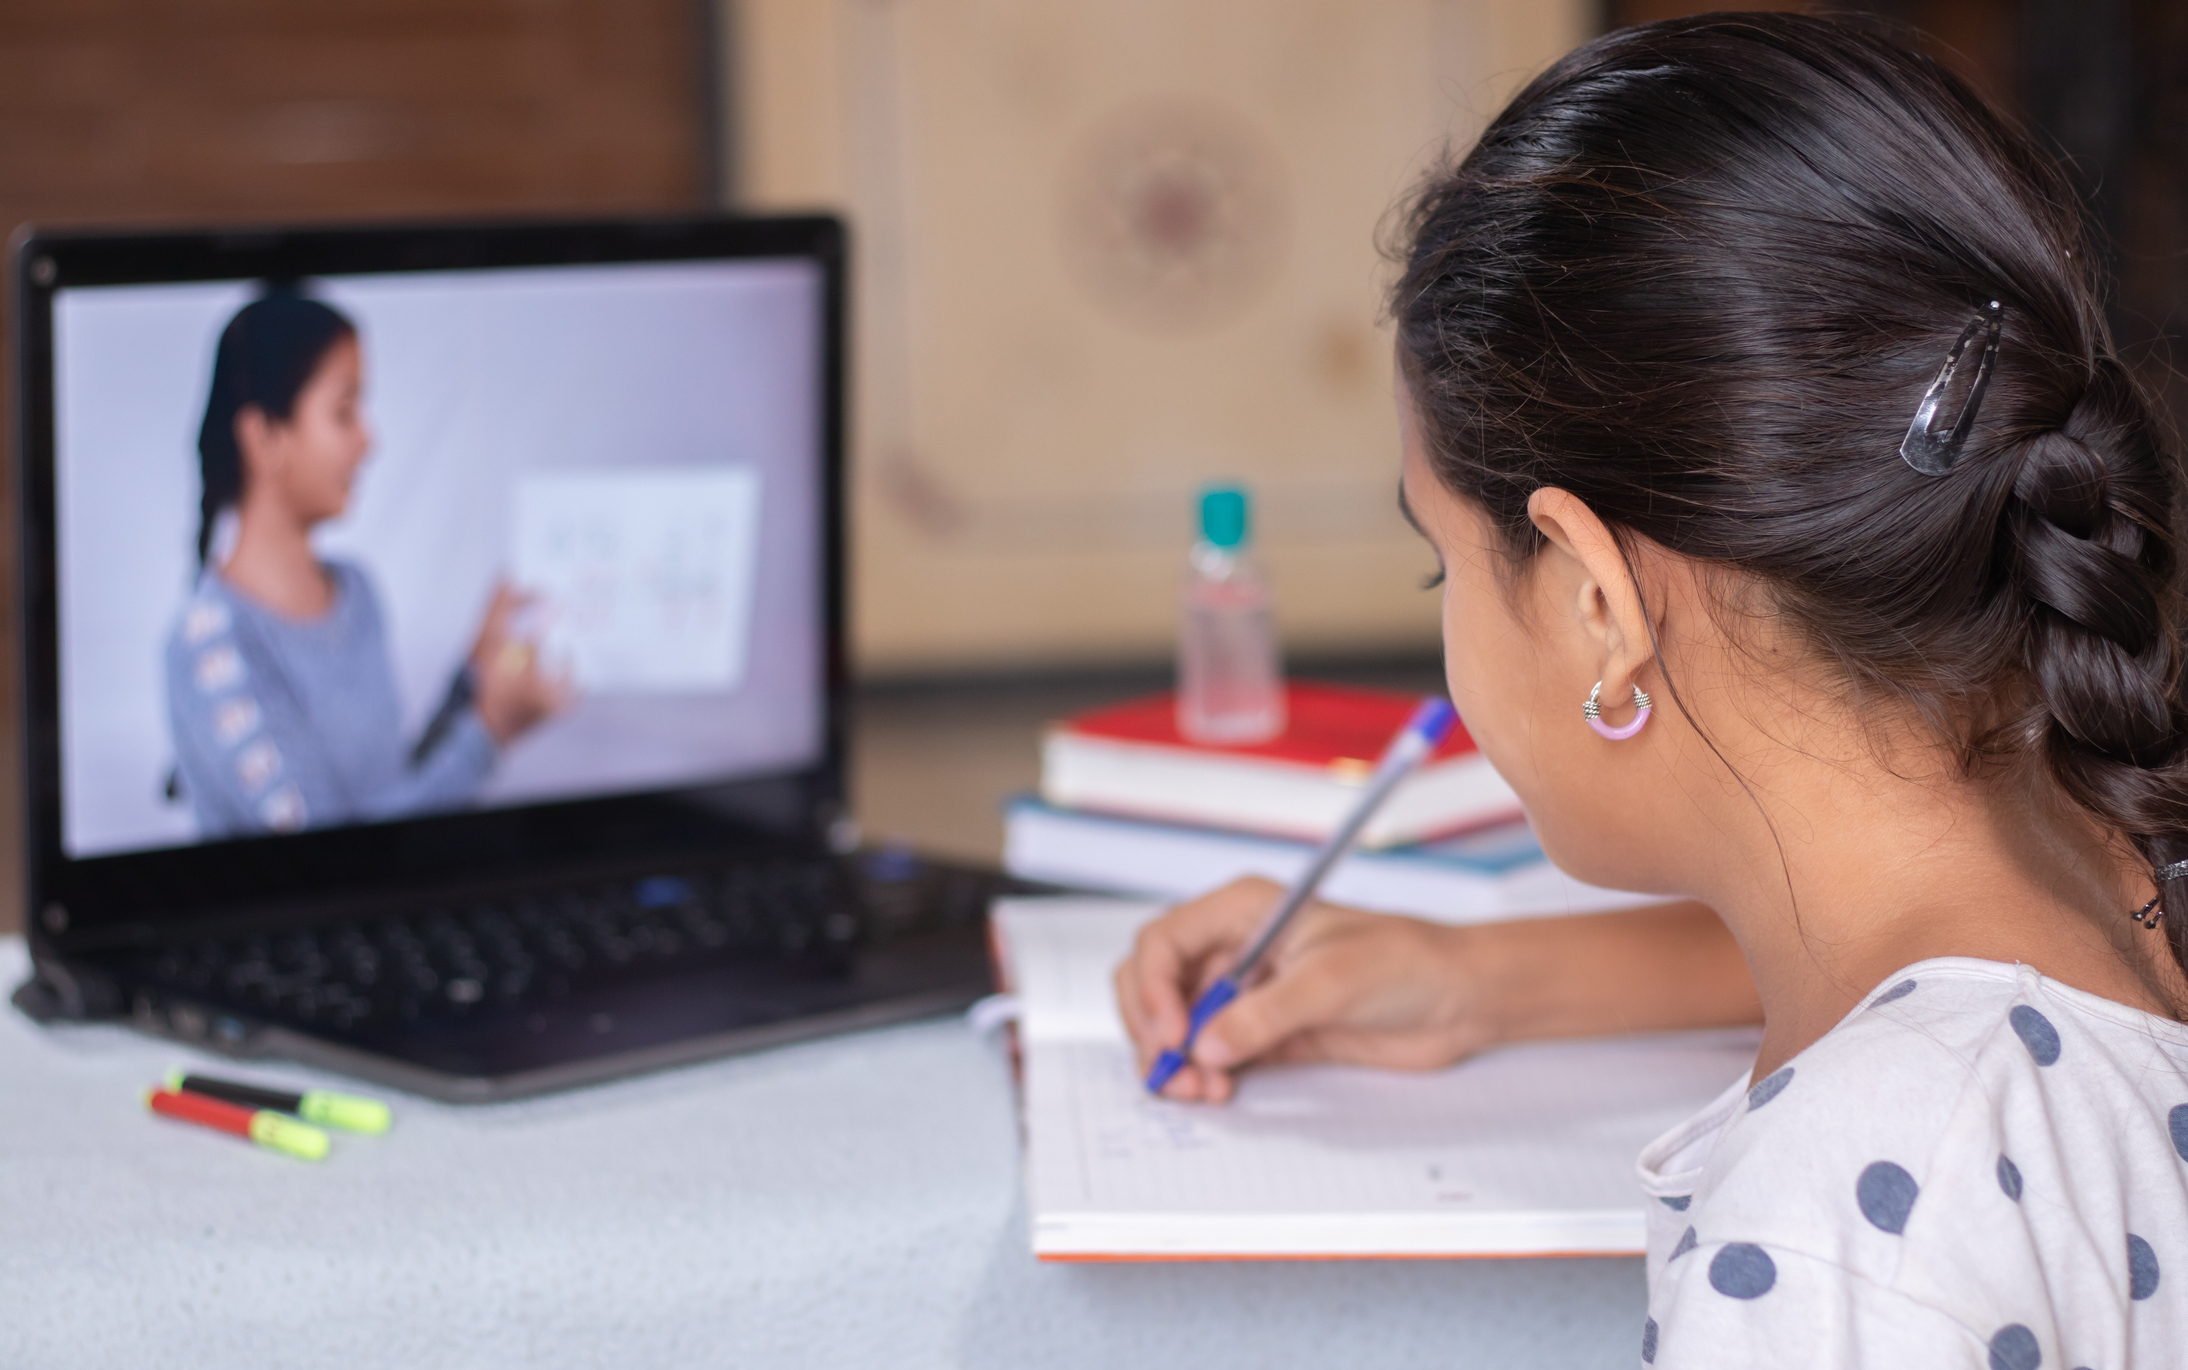 E-learning due to COVID-19. Image credit: iStock